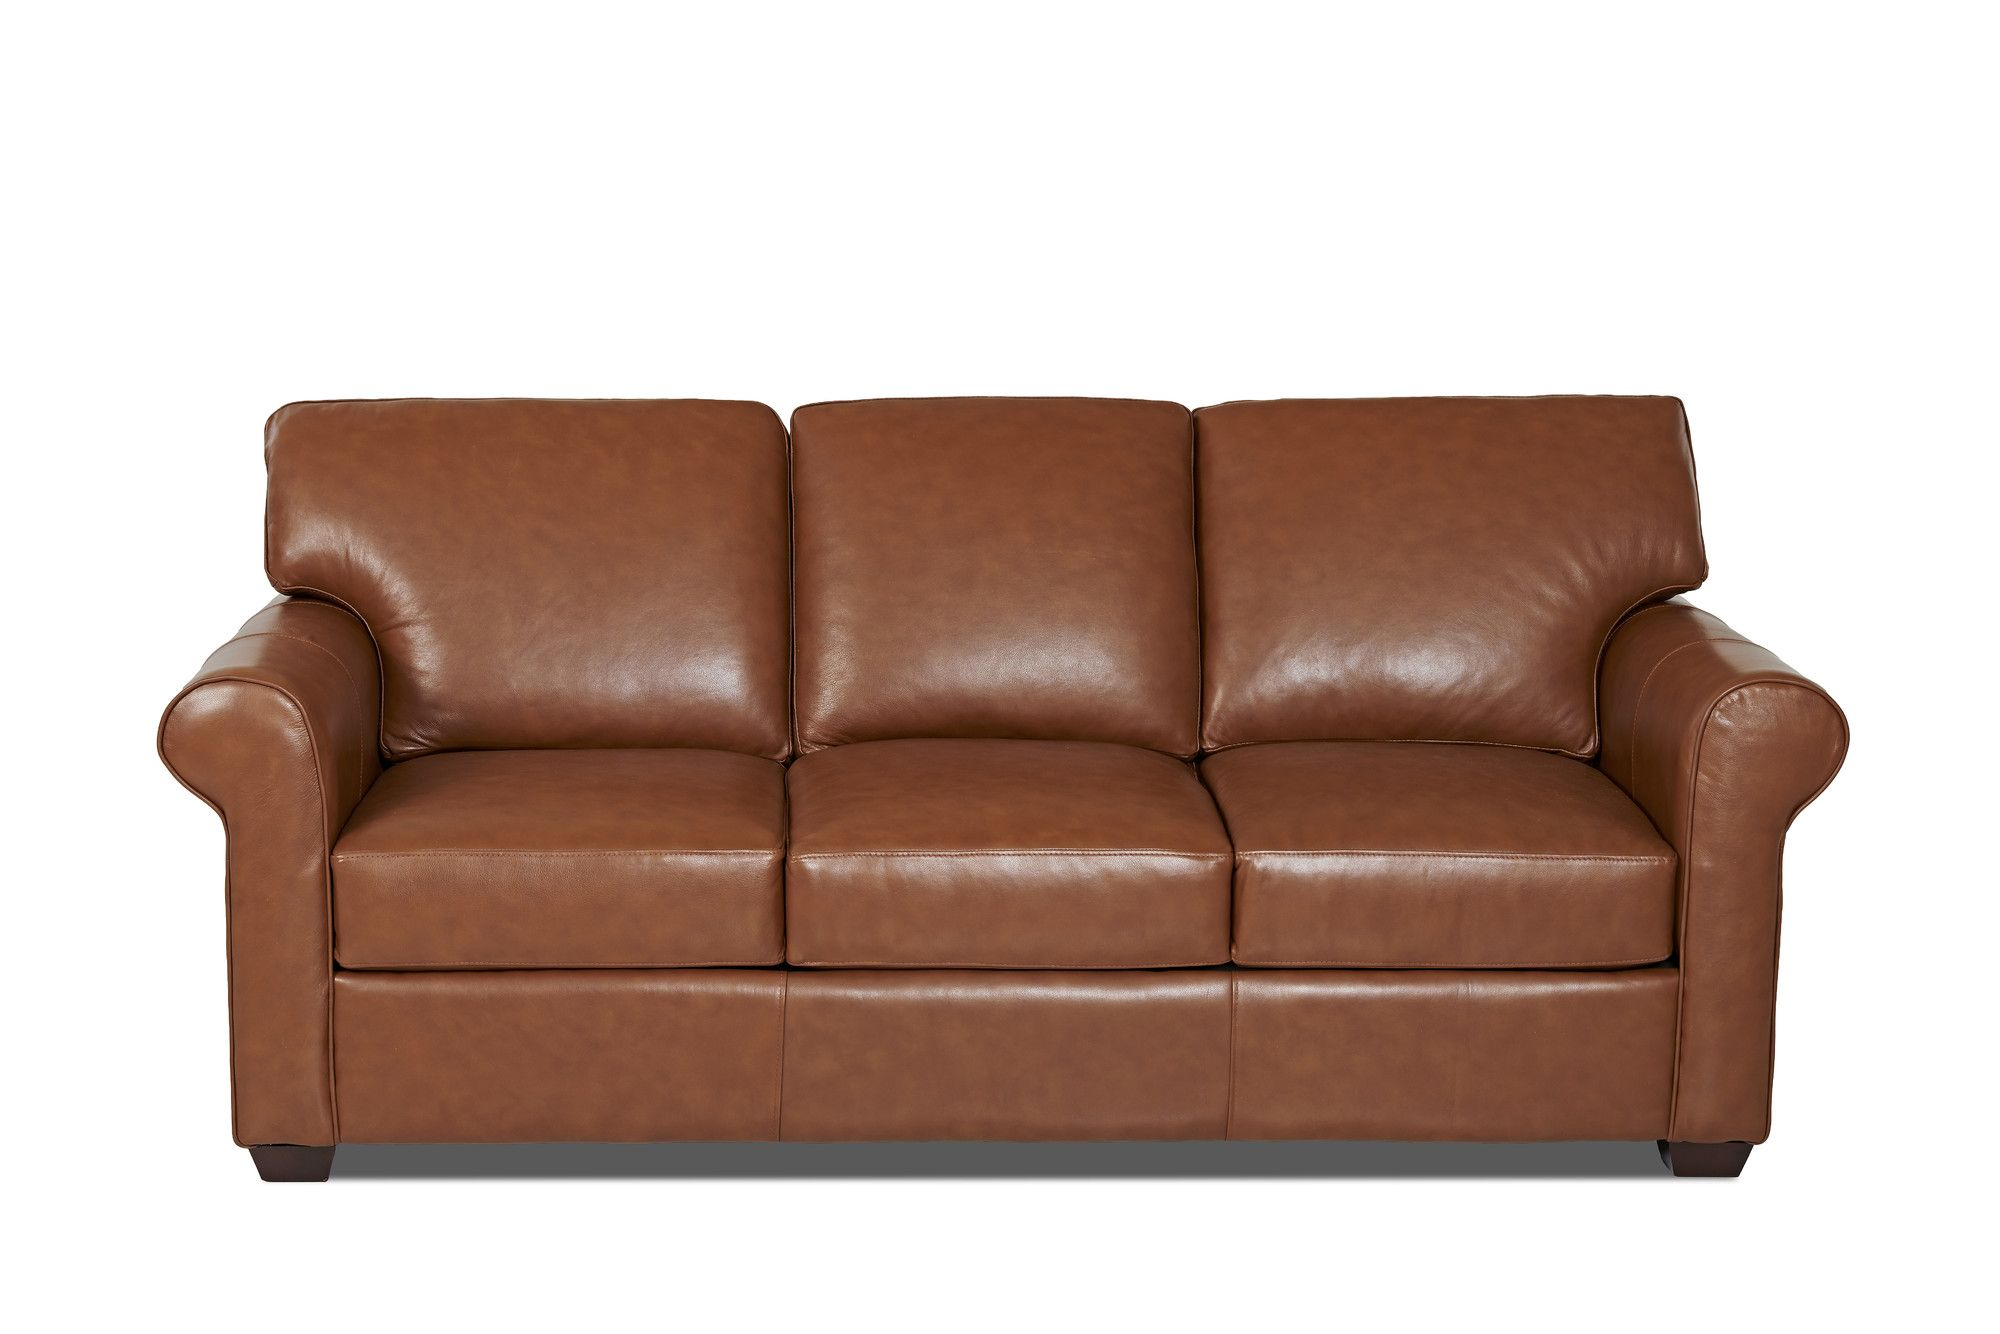 Rachel Genuine Leather 91 Rolled Arm Sofa Leather Sleeper Sofa Leather Sofa Bed Custom Upholstery